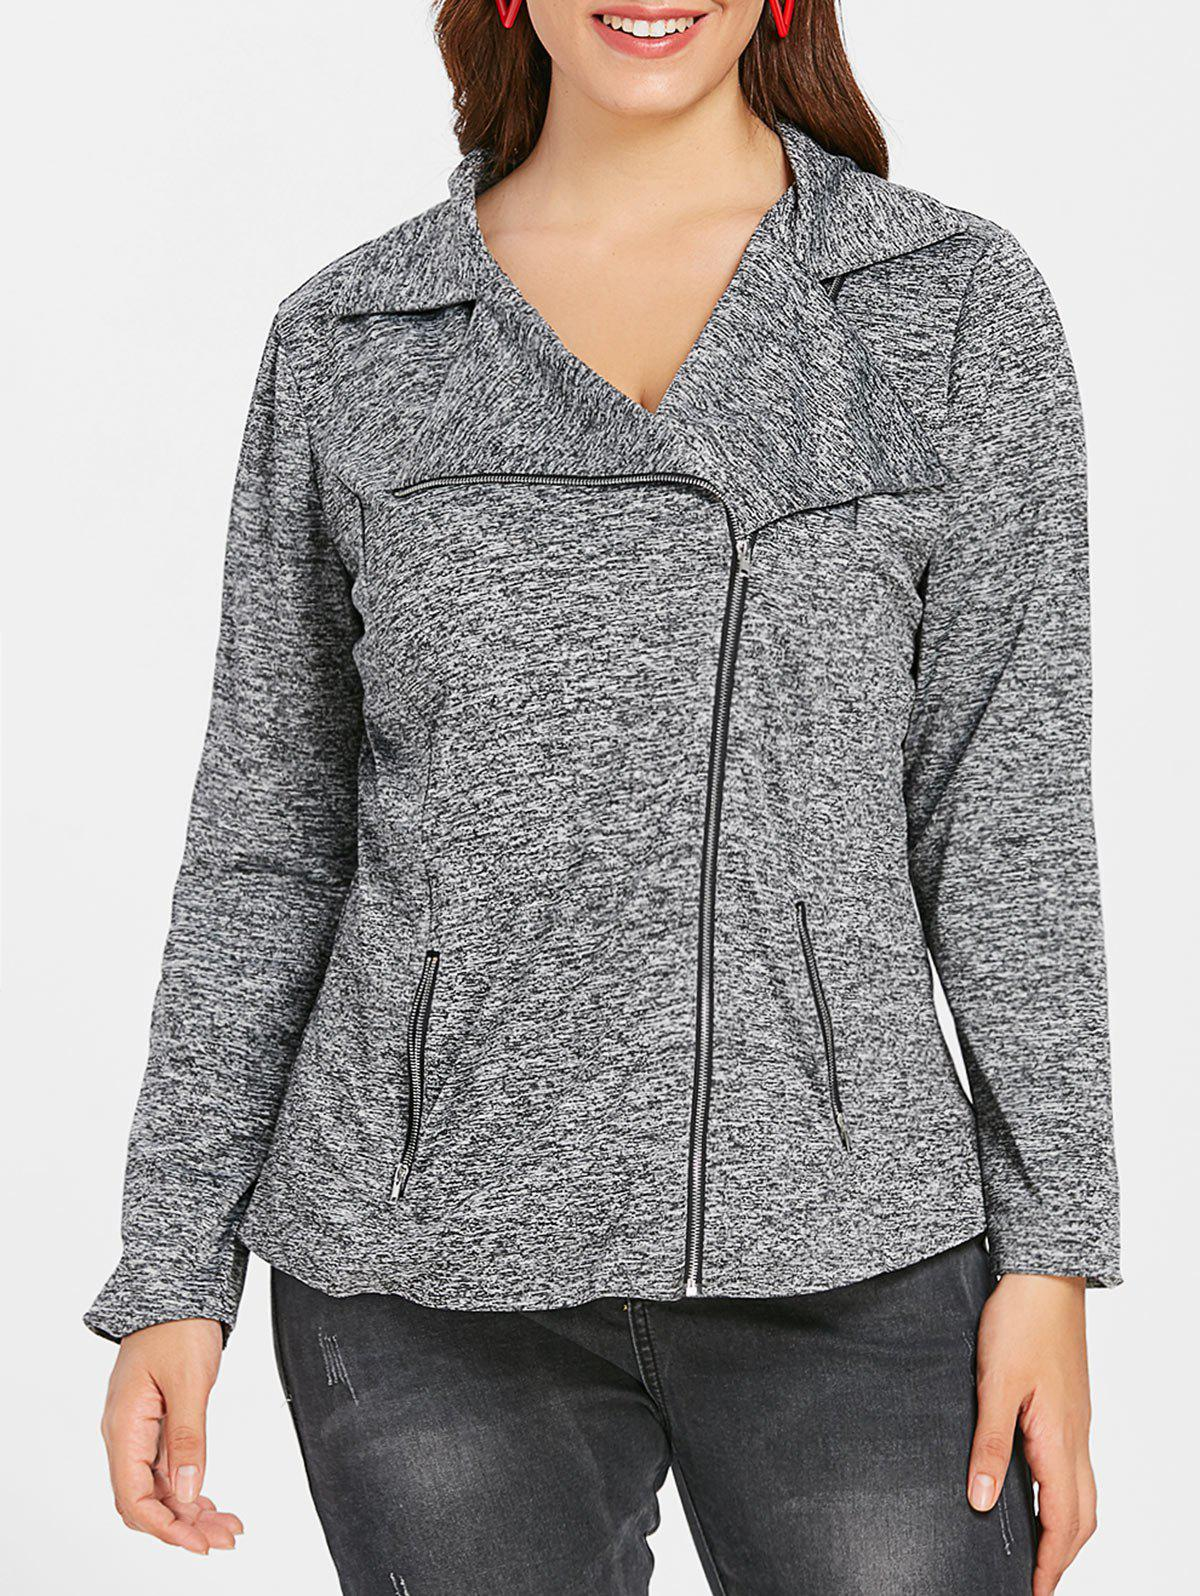 Plus Size Zip Fly Marled Jacket - GRAY 3X